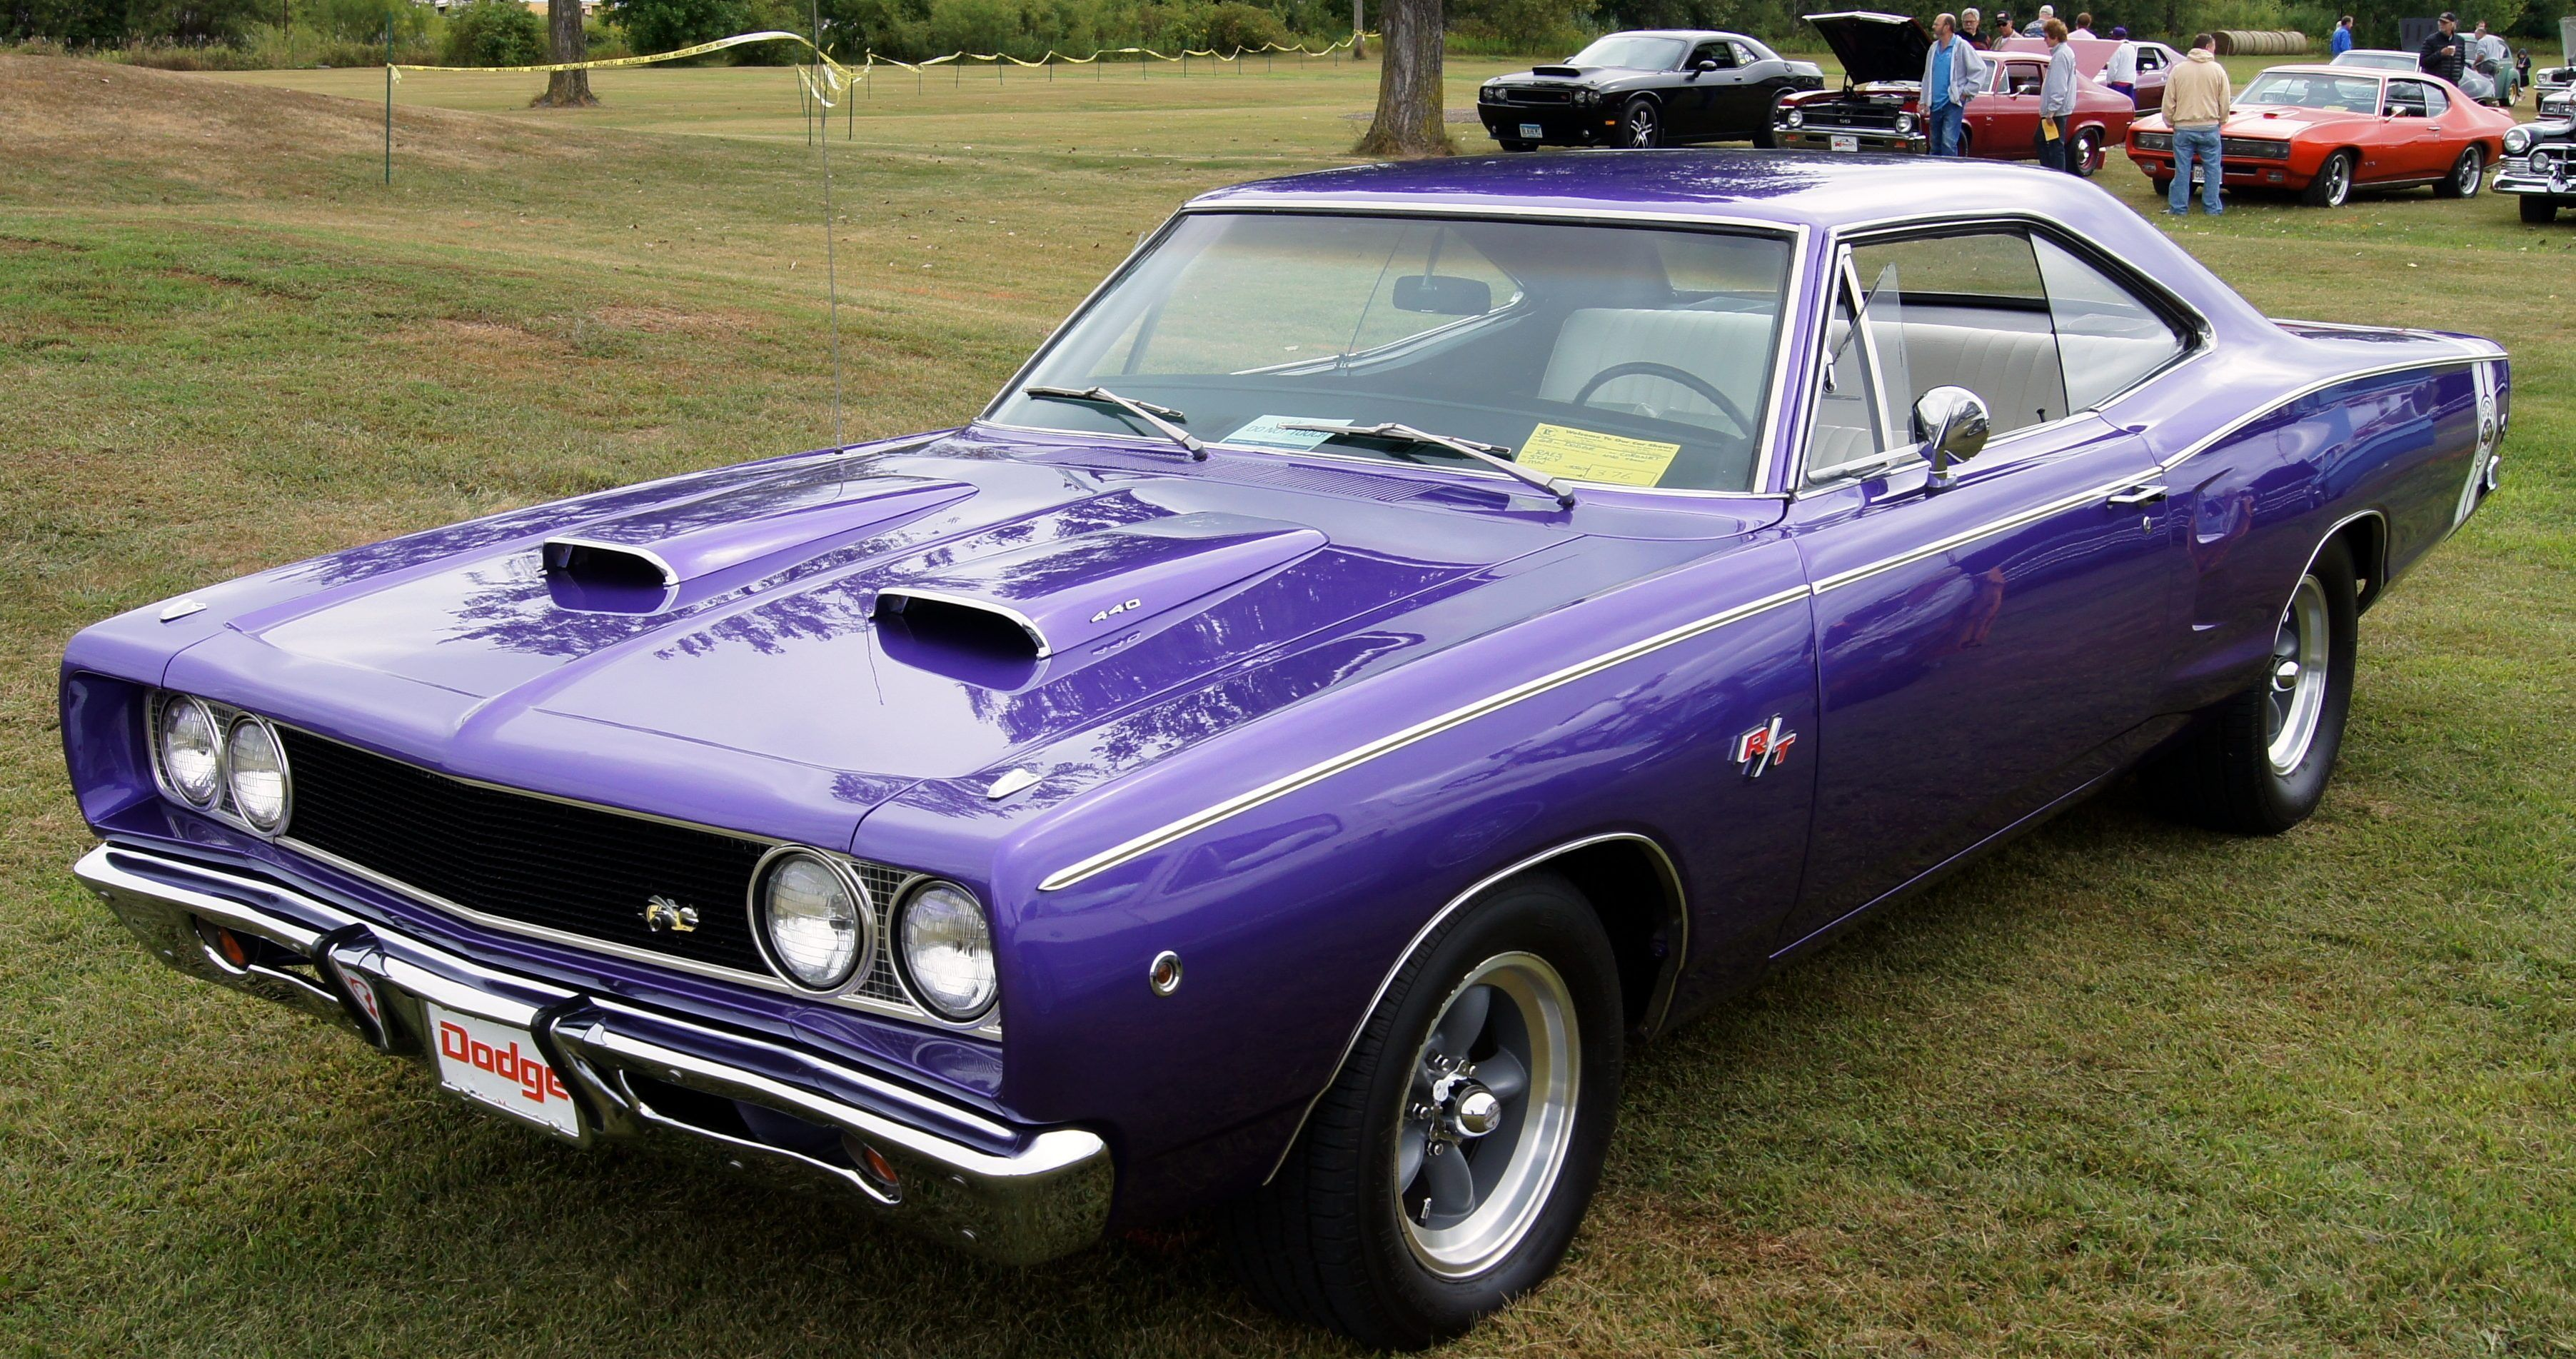 The Most Badass '60s Muscle Cars You Can Buy for $15,000